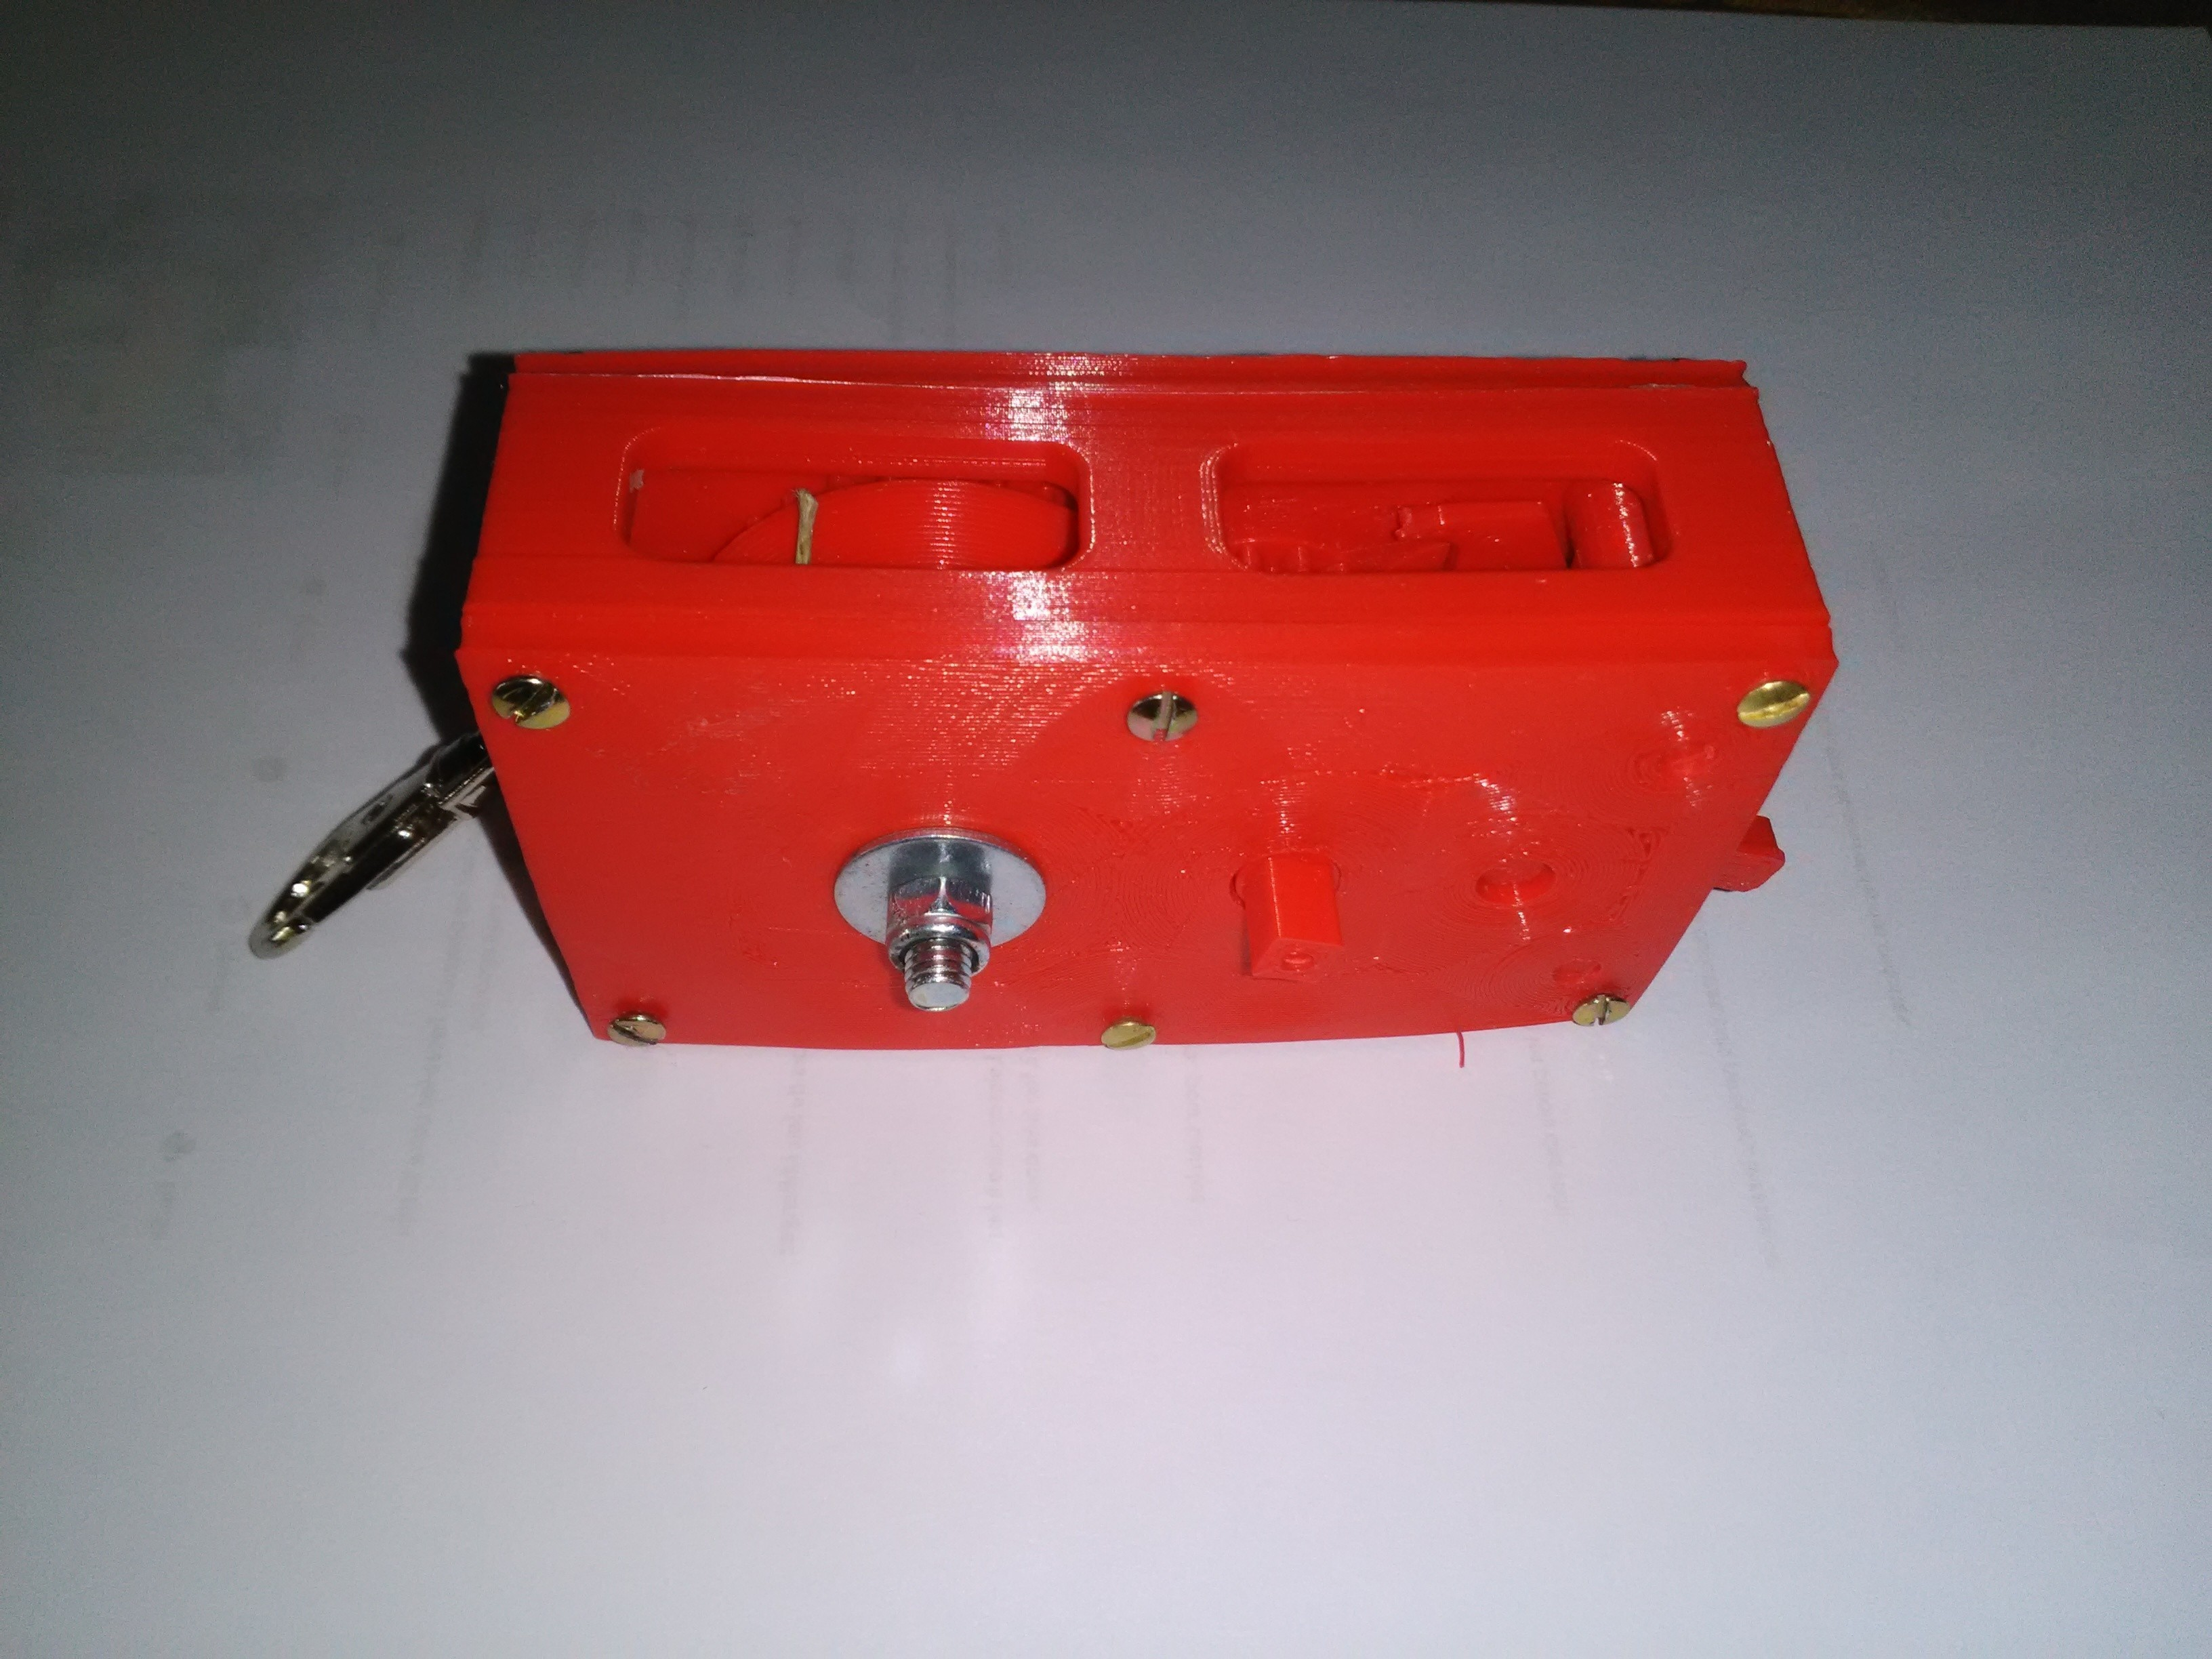 IMG_20180119_144316.jpg Download free STL file Manual winch • 3D print object, mk25